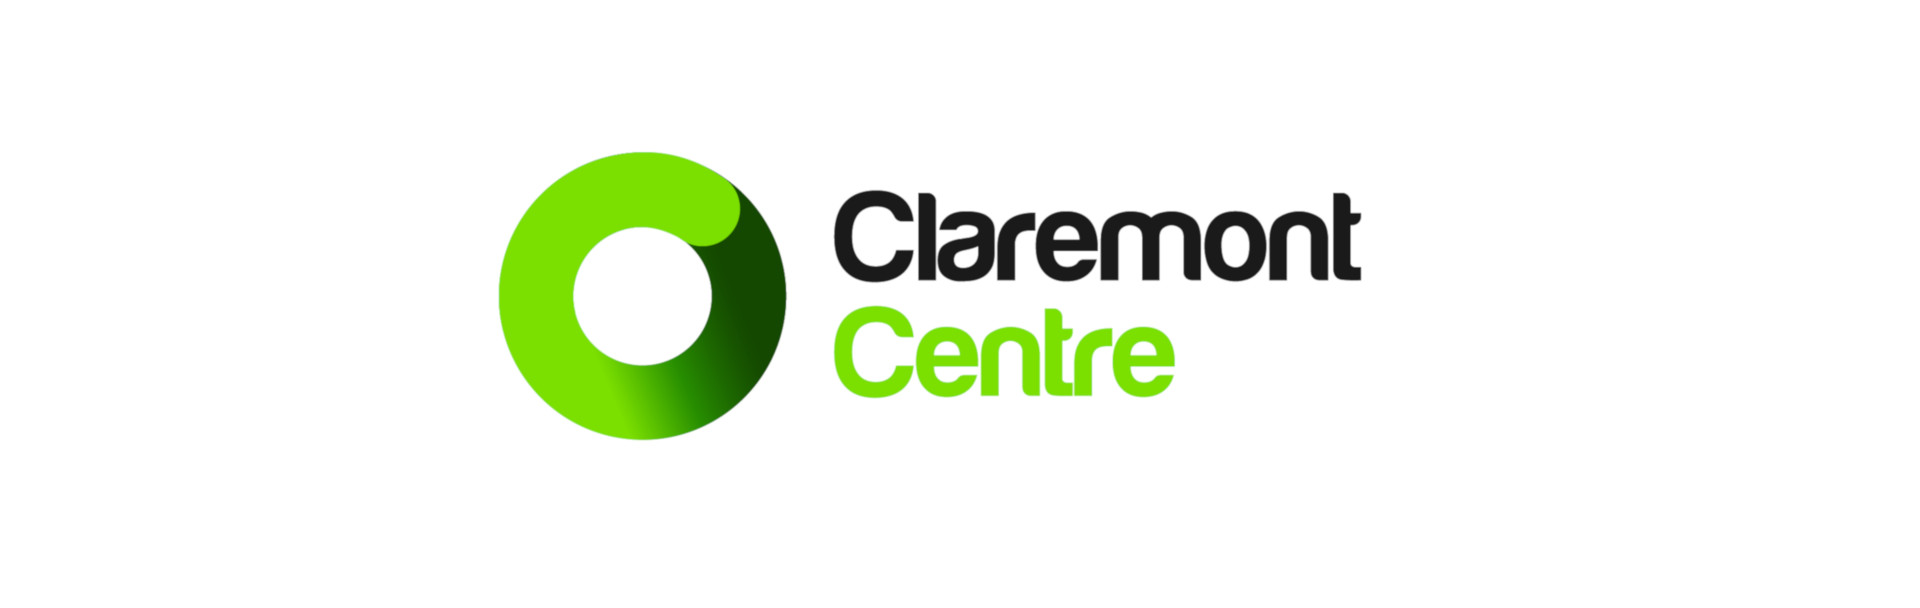 Claremont Centre Archive Storage Unit Solutions